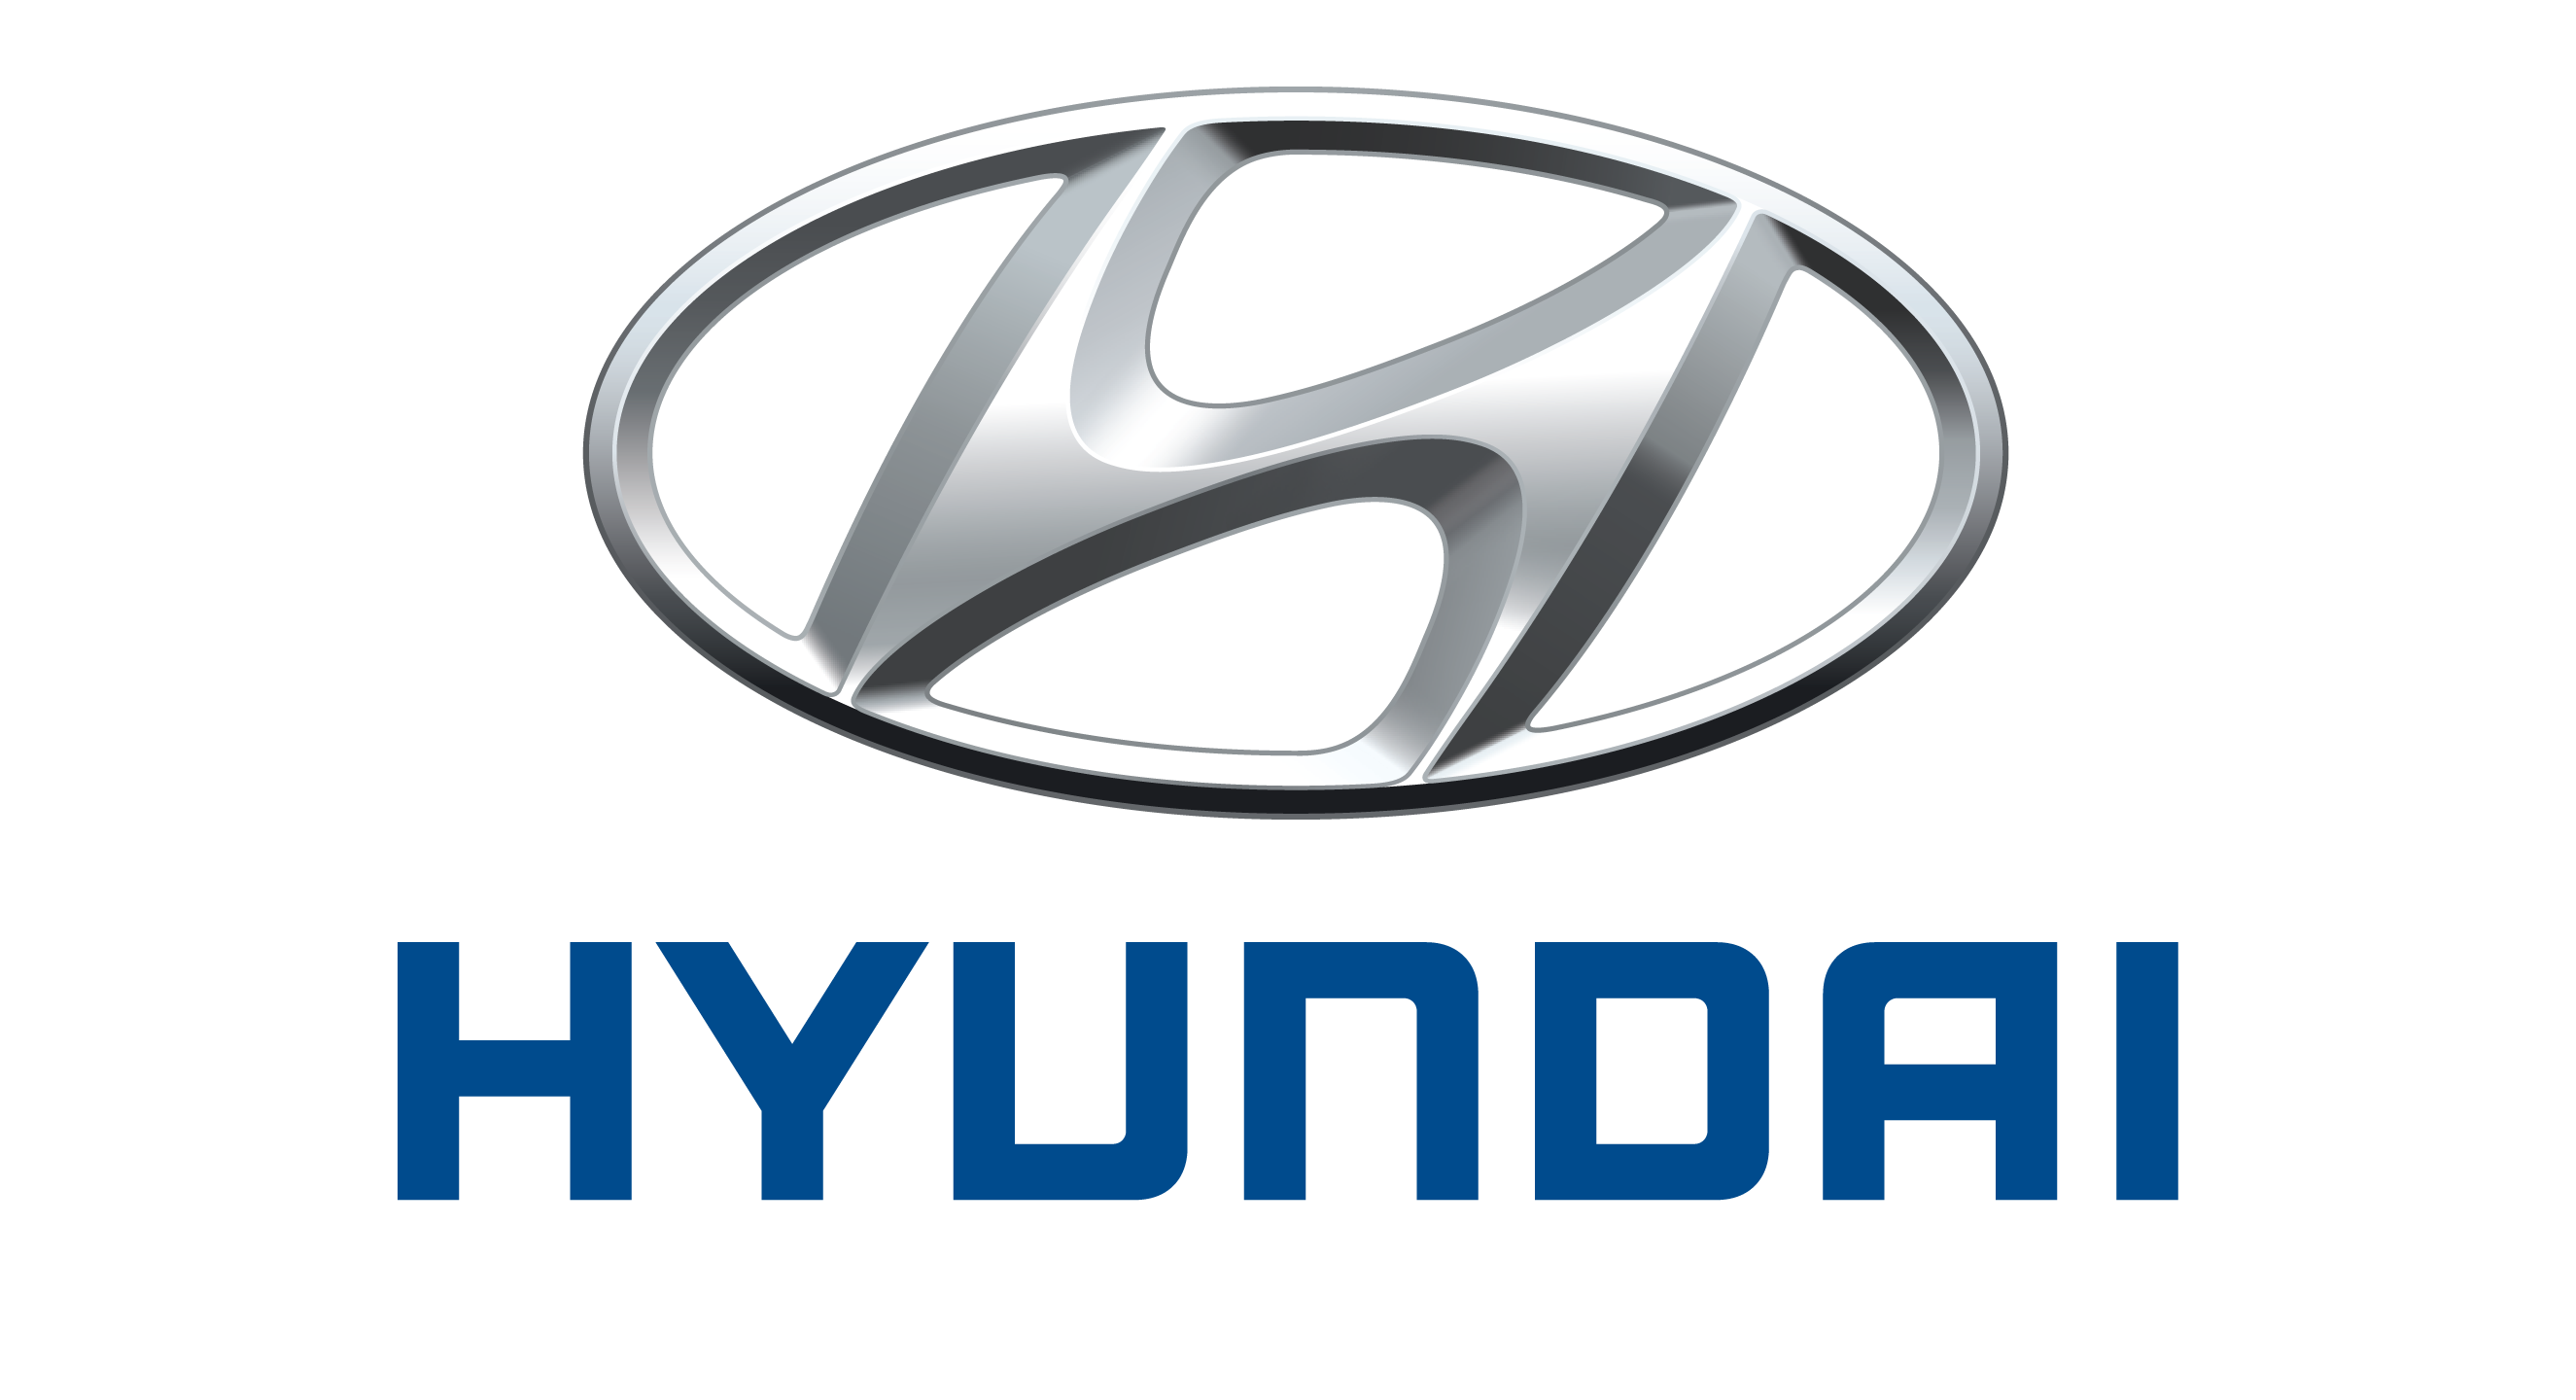 Structure my hyundai deal fort wayne area hyundai at tom ahl hyundai we want to make it easier for shoppers to get the deal they want for their new car we developed structure my deal when it comes time biocorpaavc